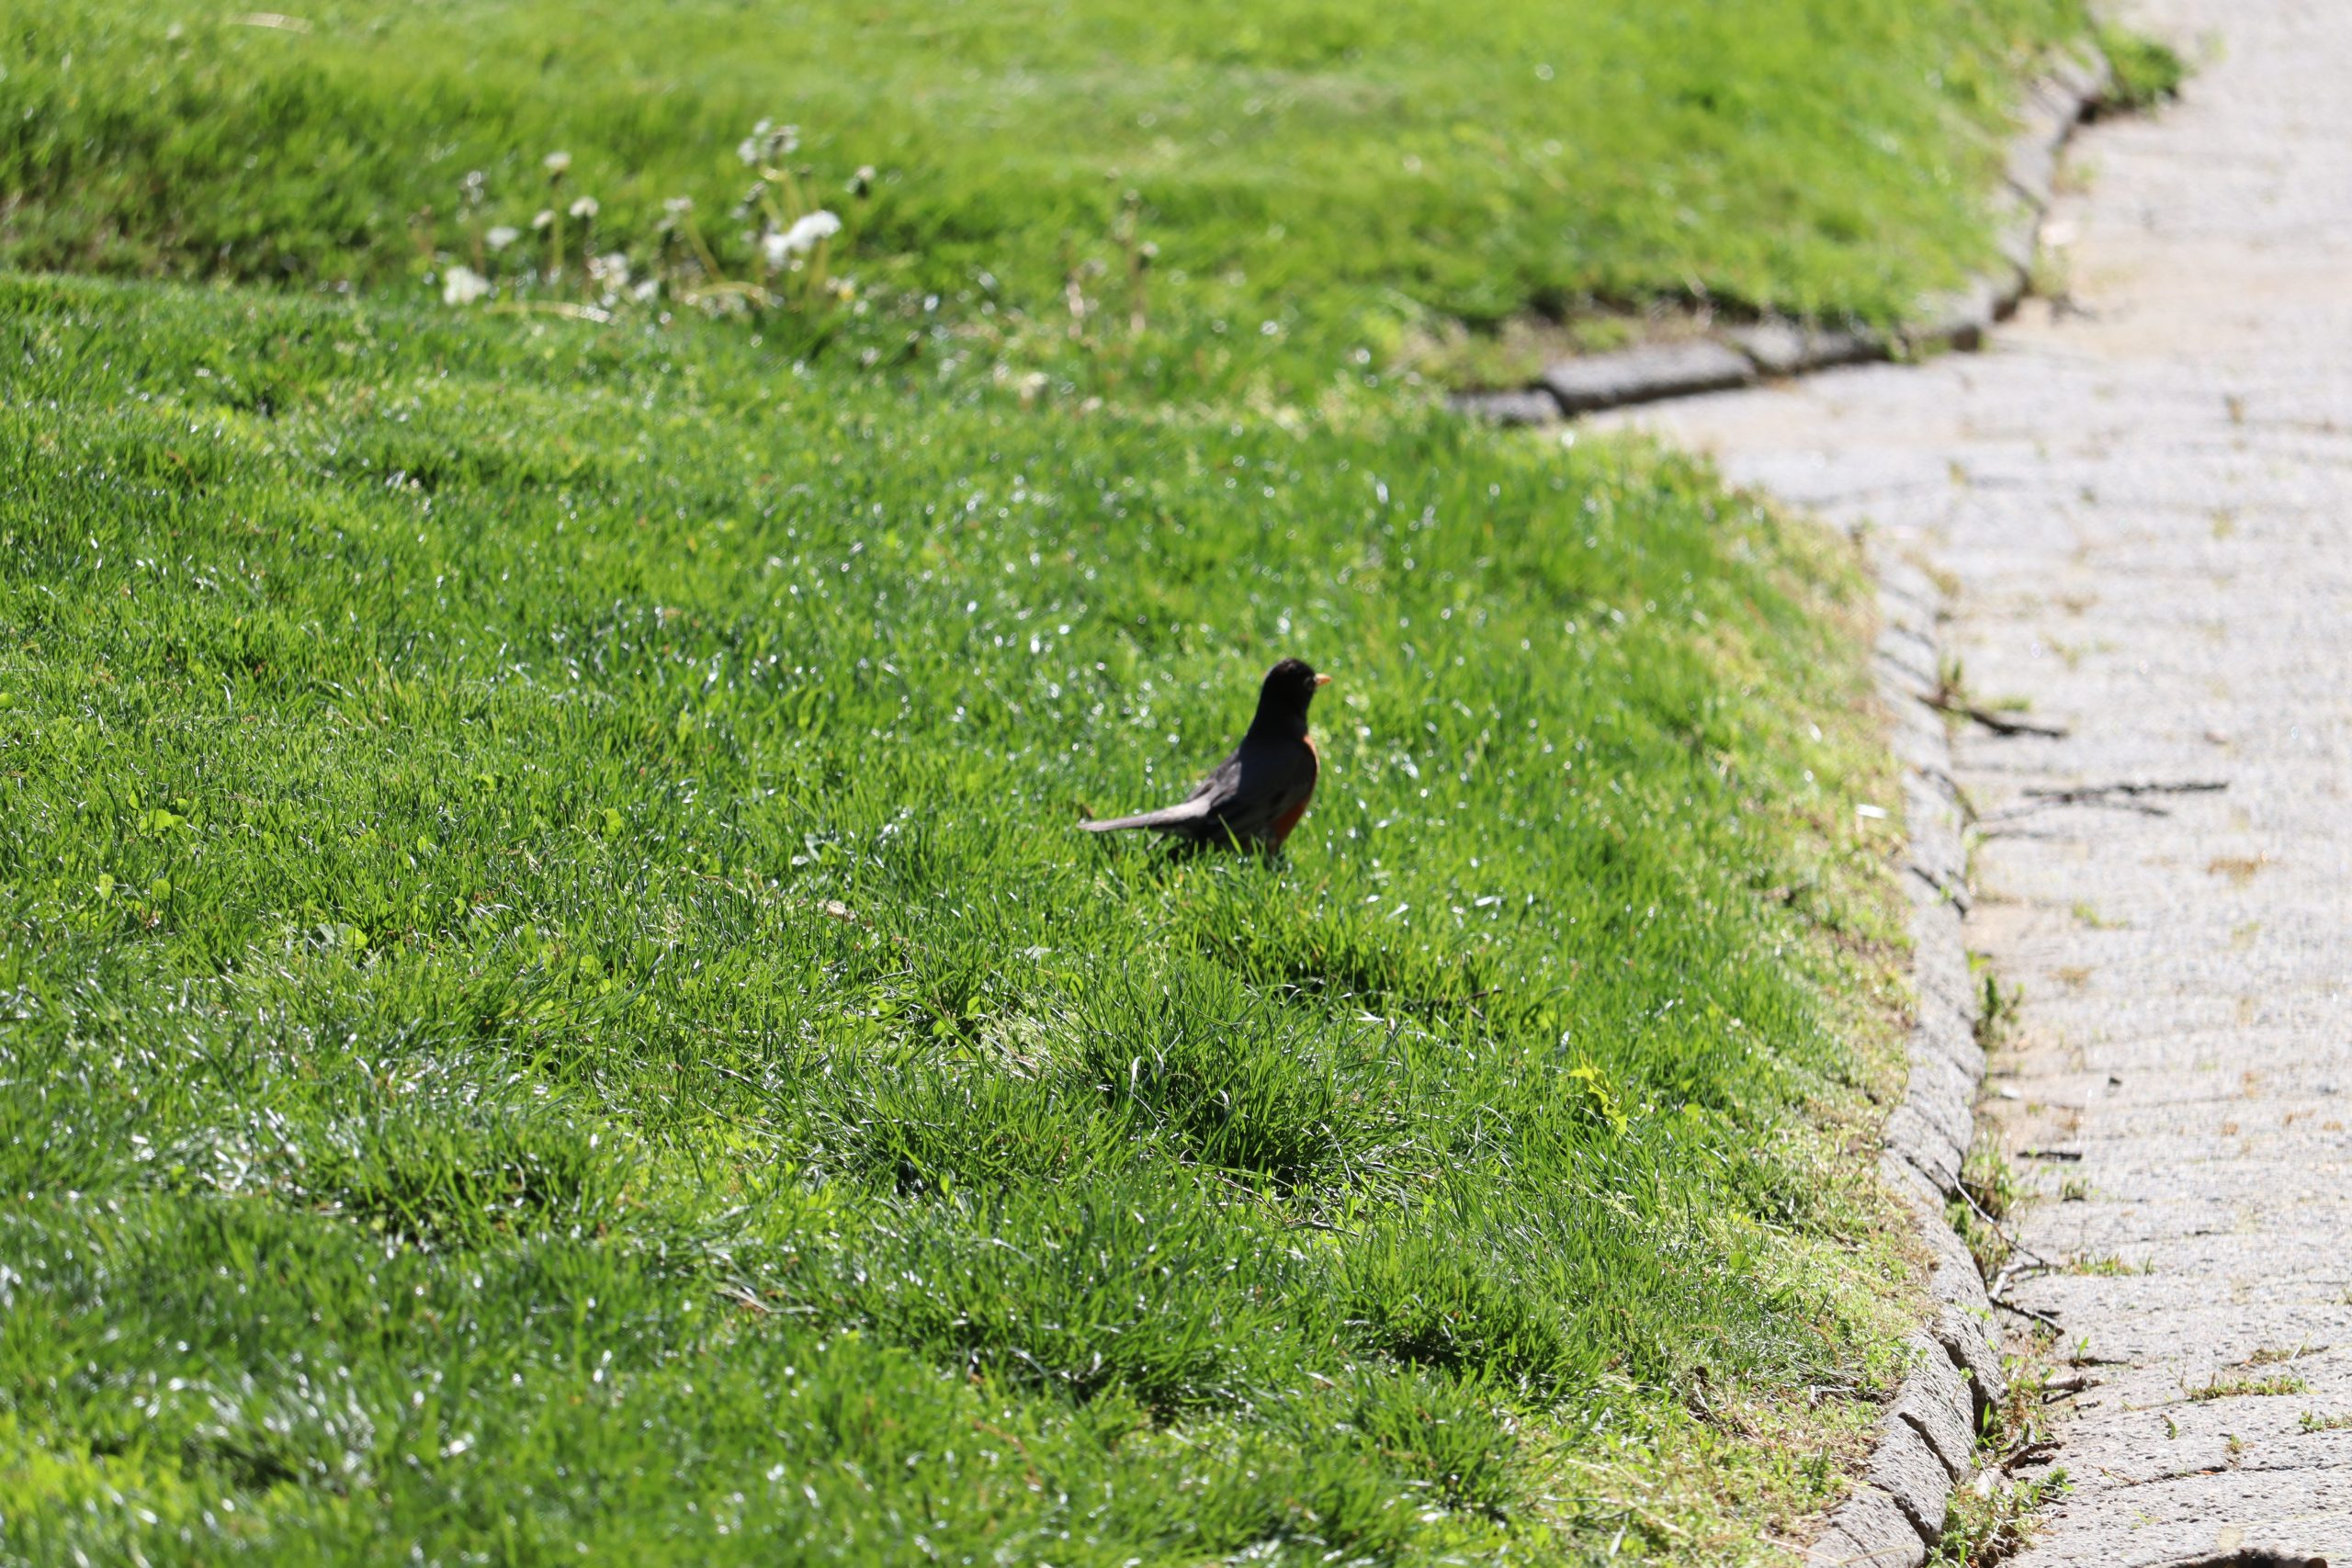 A picture of the SAME American Robin in the grass at Green-Wood Cemetery; I used a 250MM lens length for this photo. What a difference in perspective and focus!